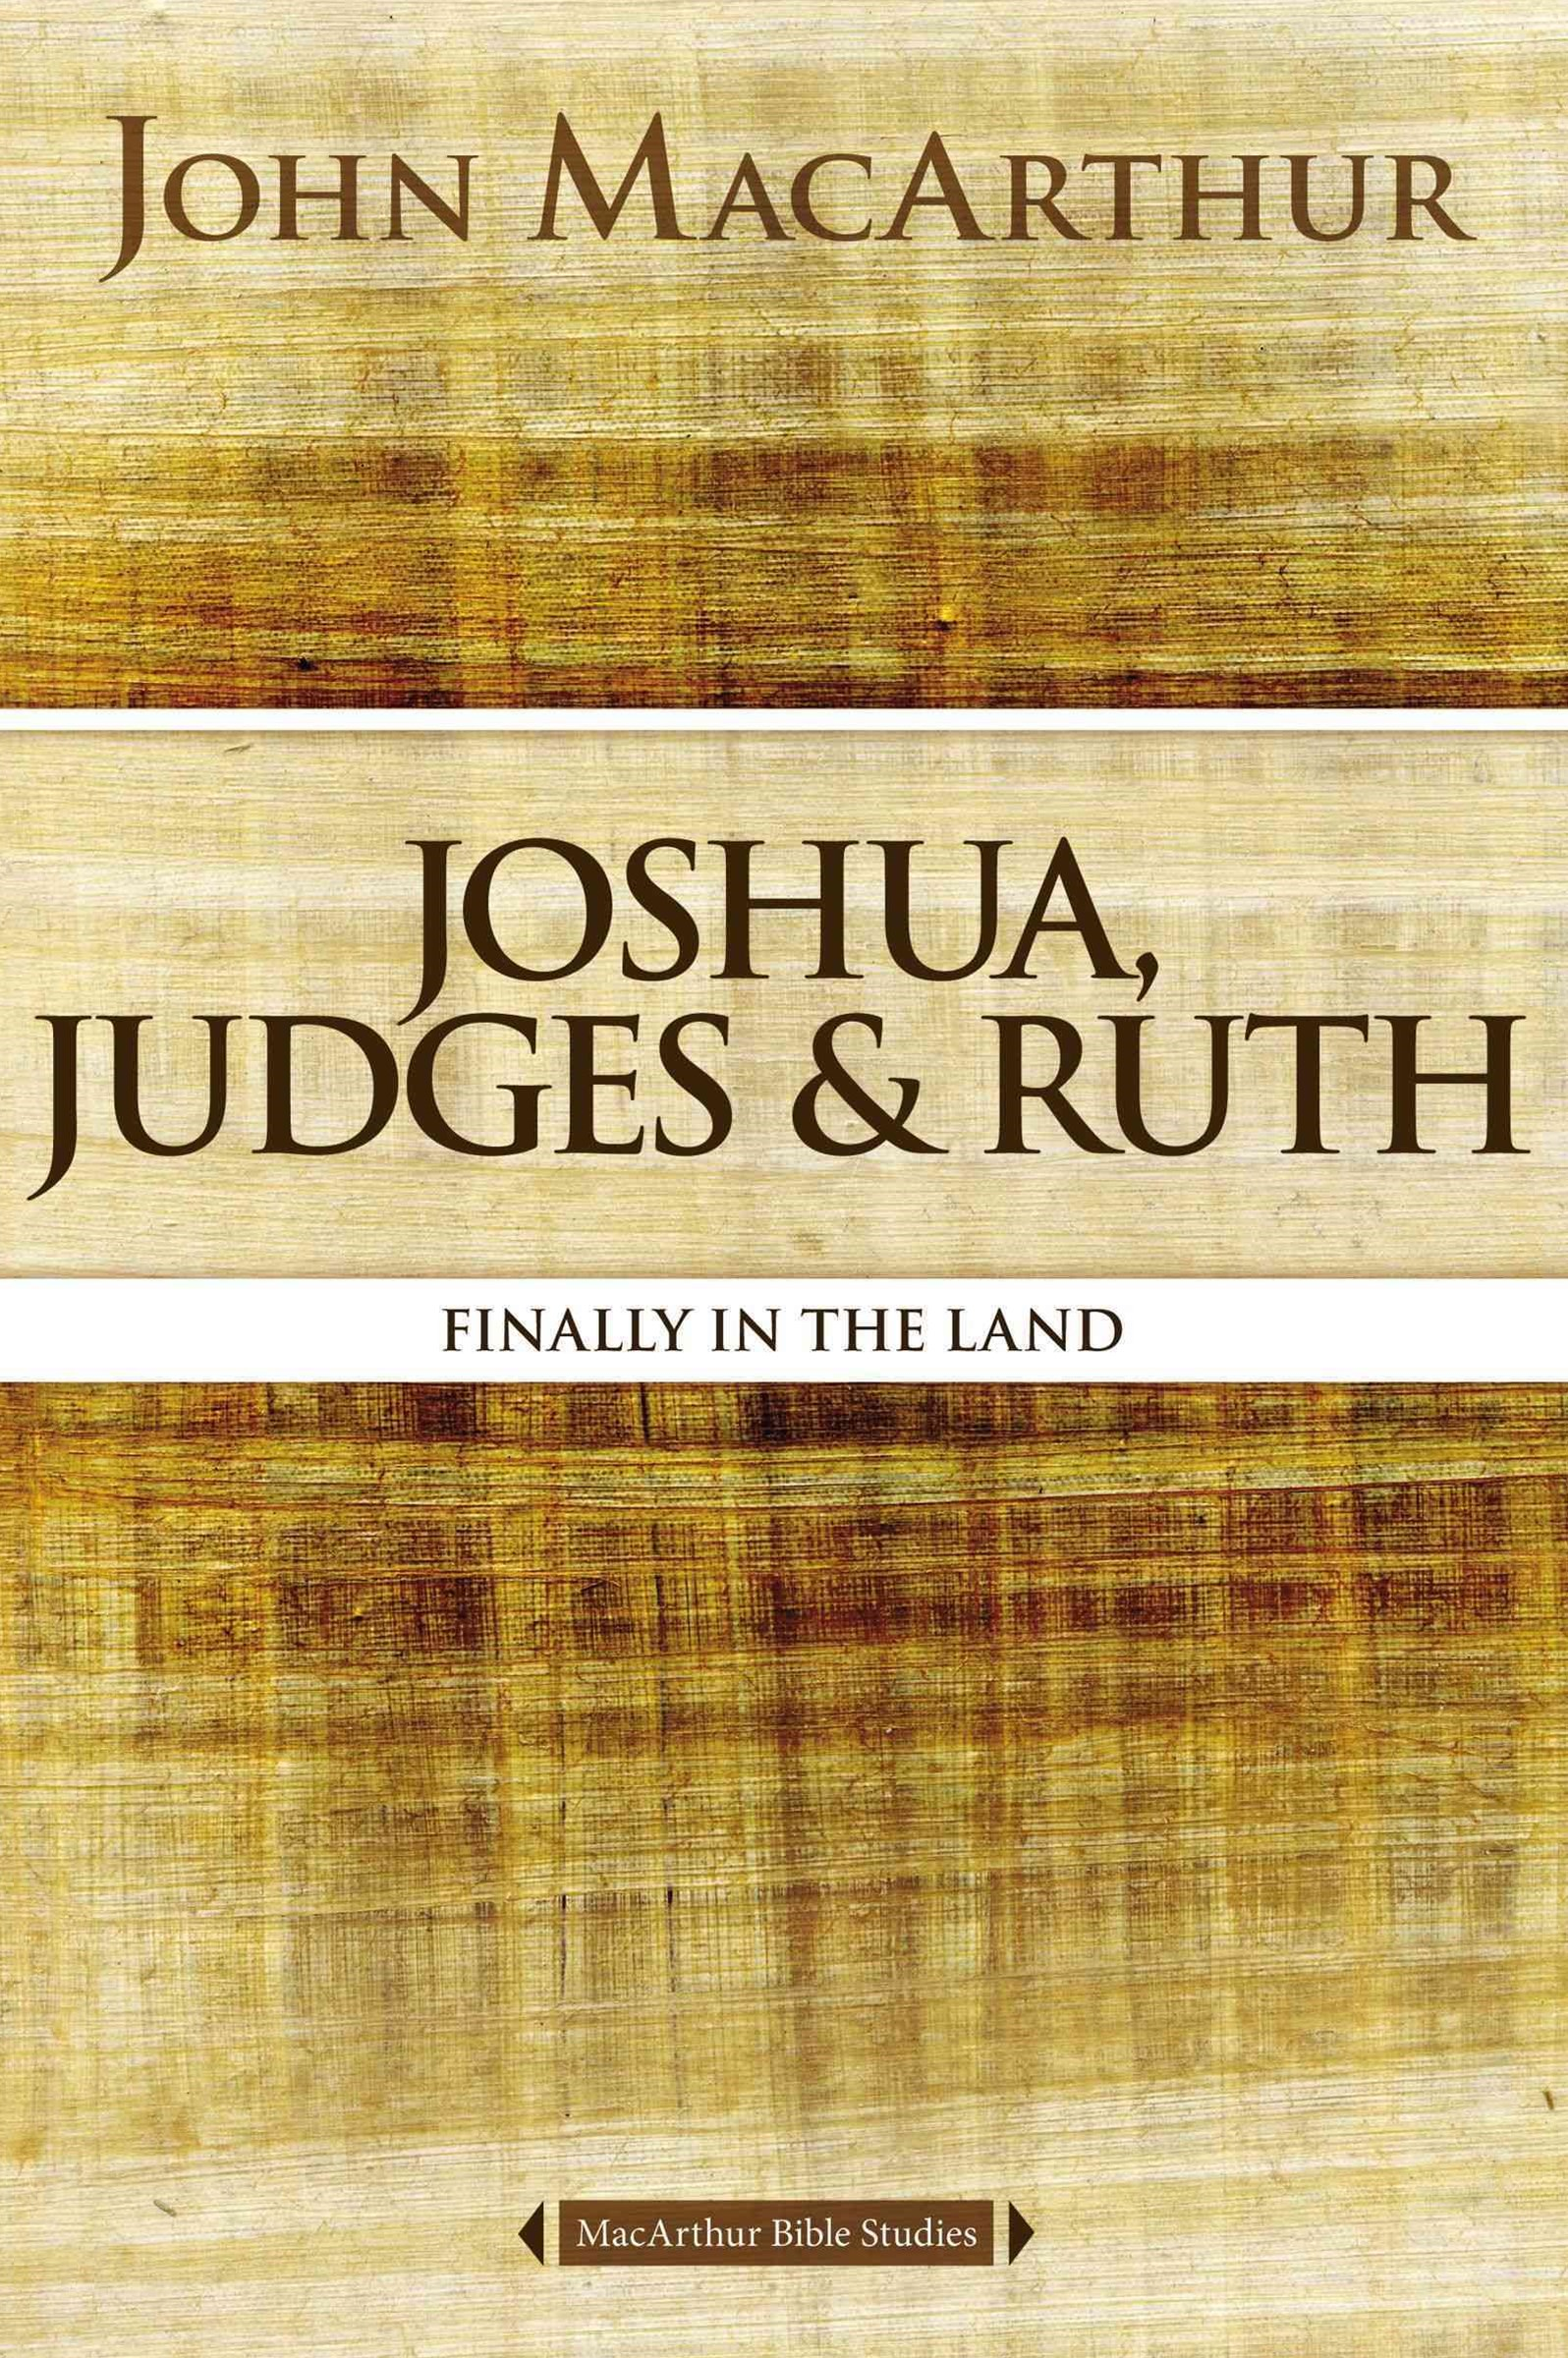 Joshua, Judges, and Ruth: Finally in the Land